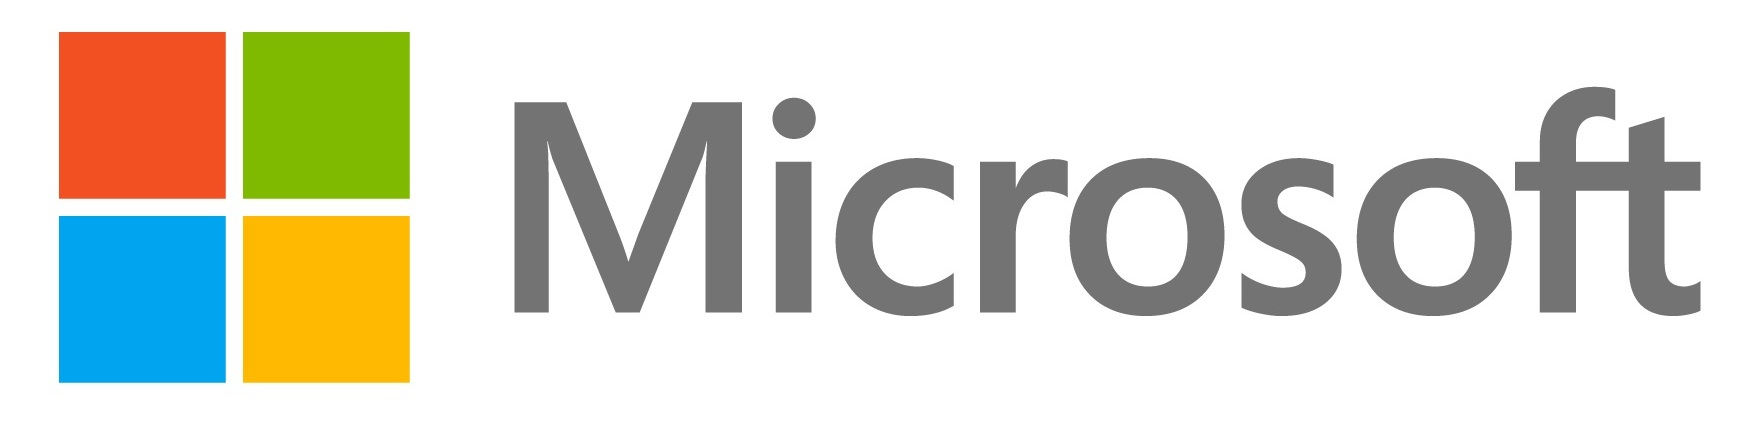 Microsoft-Logo-Transparent-Background.jpg